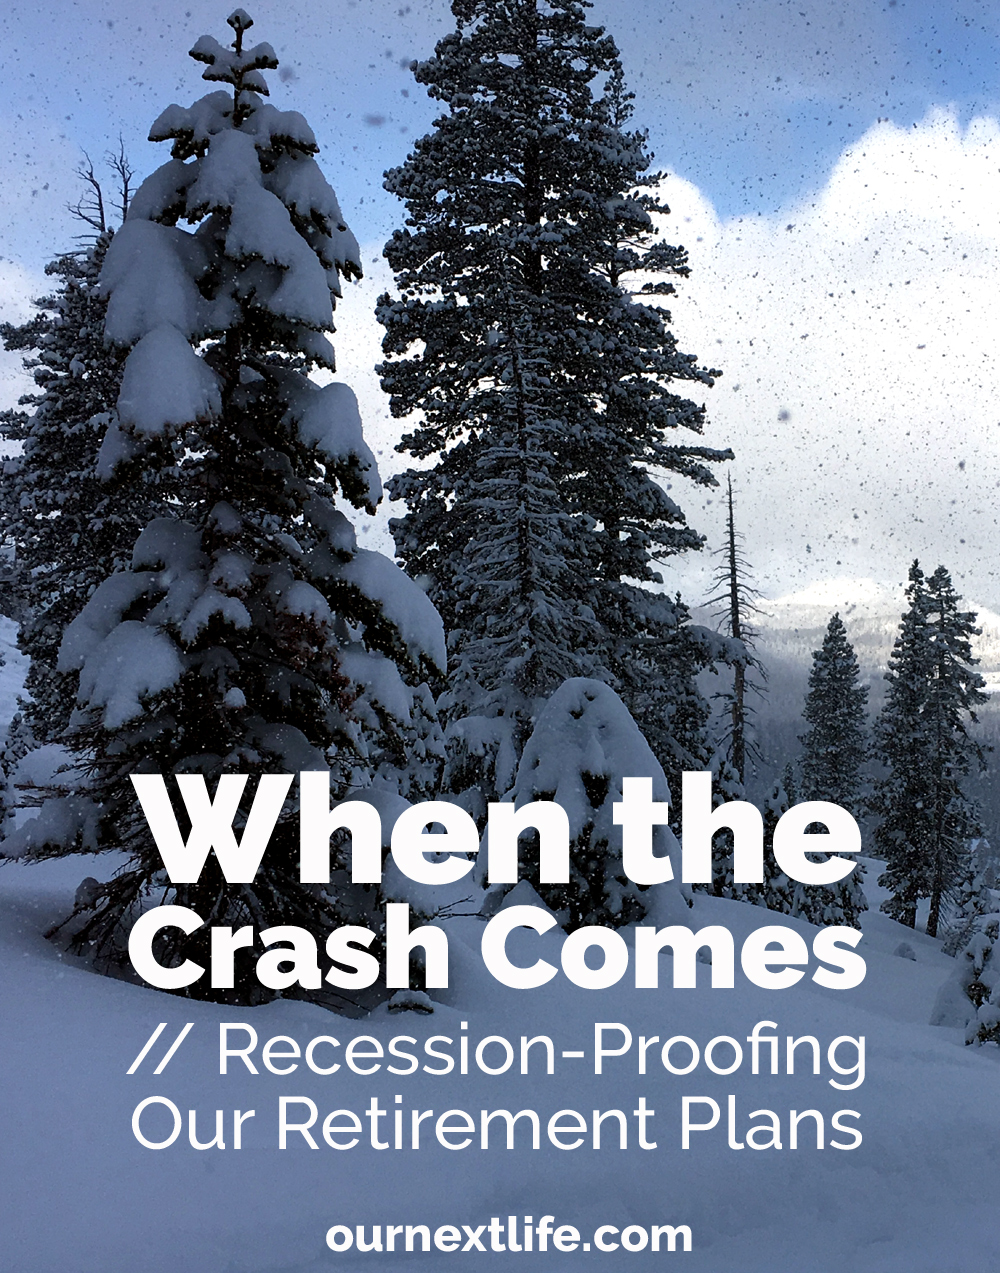 When the Crash Comes // Recession-Proofing Our Retirement Plans / Financial Planning to ride out market downturns, a financial crisis, or a market correction or crash